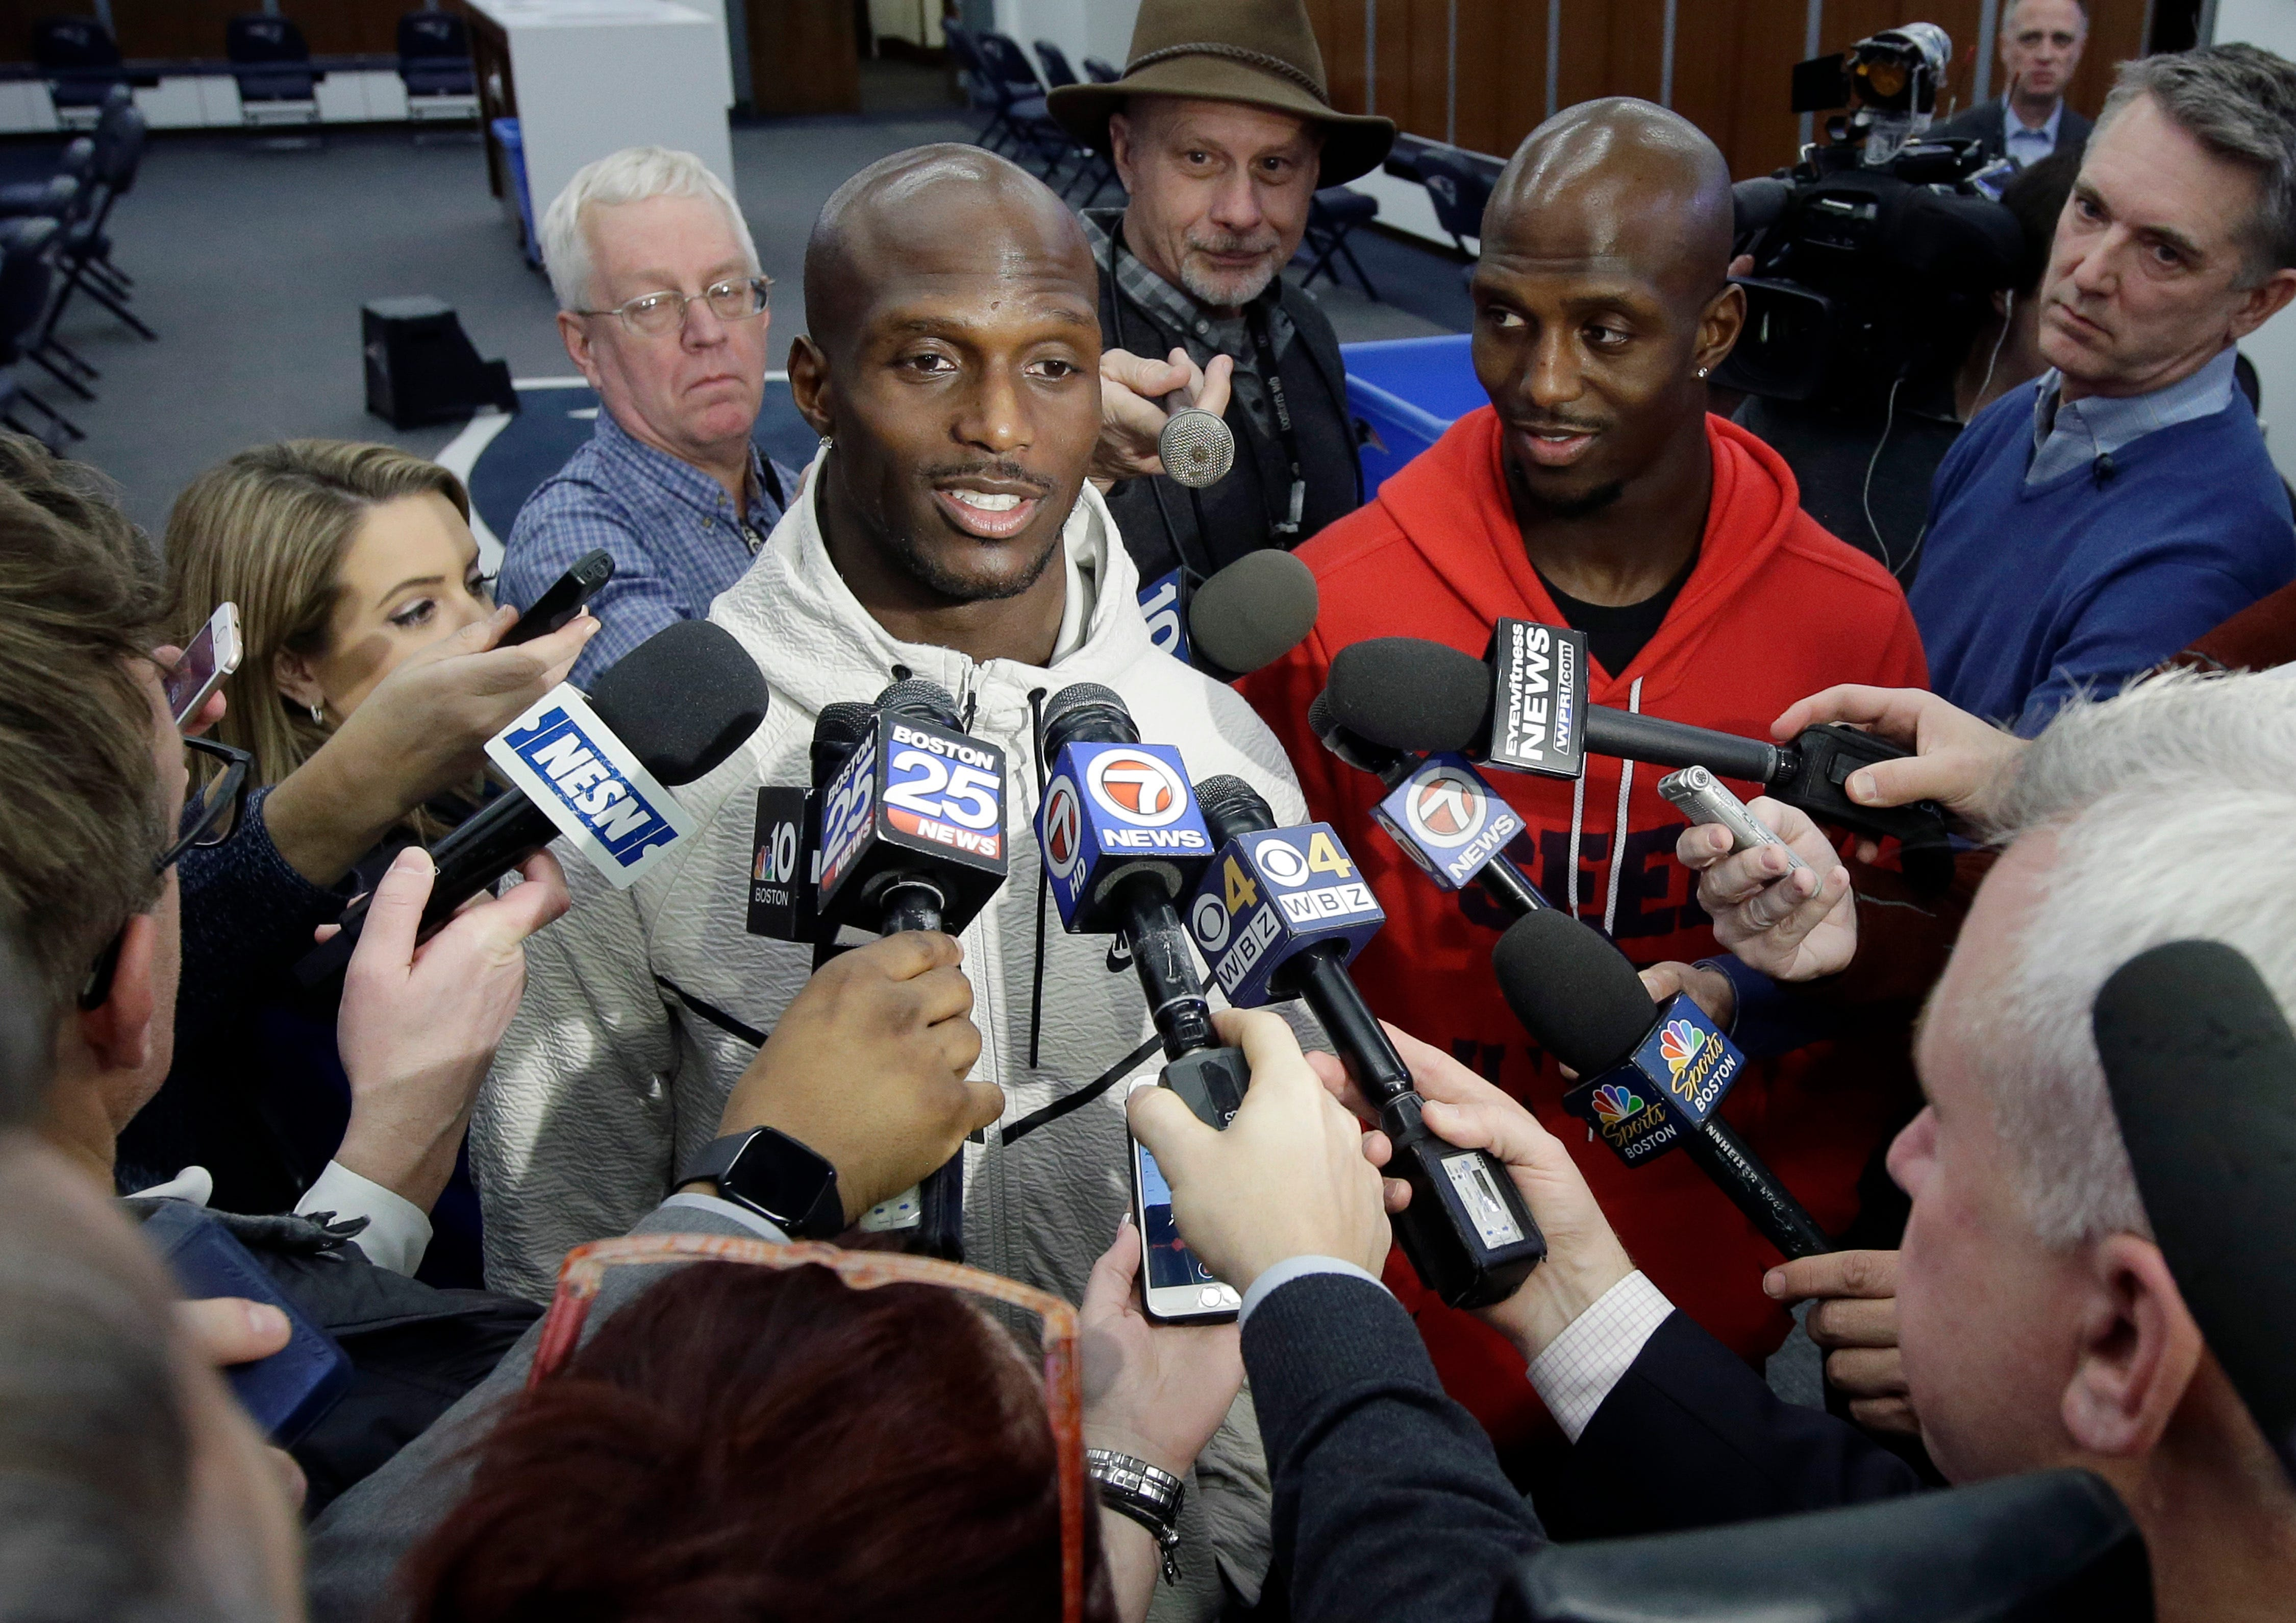 Patriots' Devin McCourty won't go to White House, brother Jason says he 'highly' doubts it